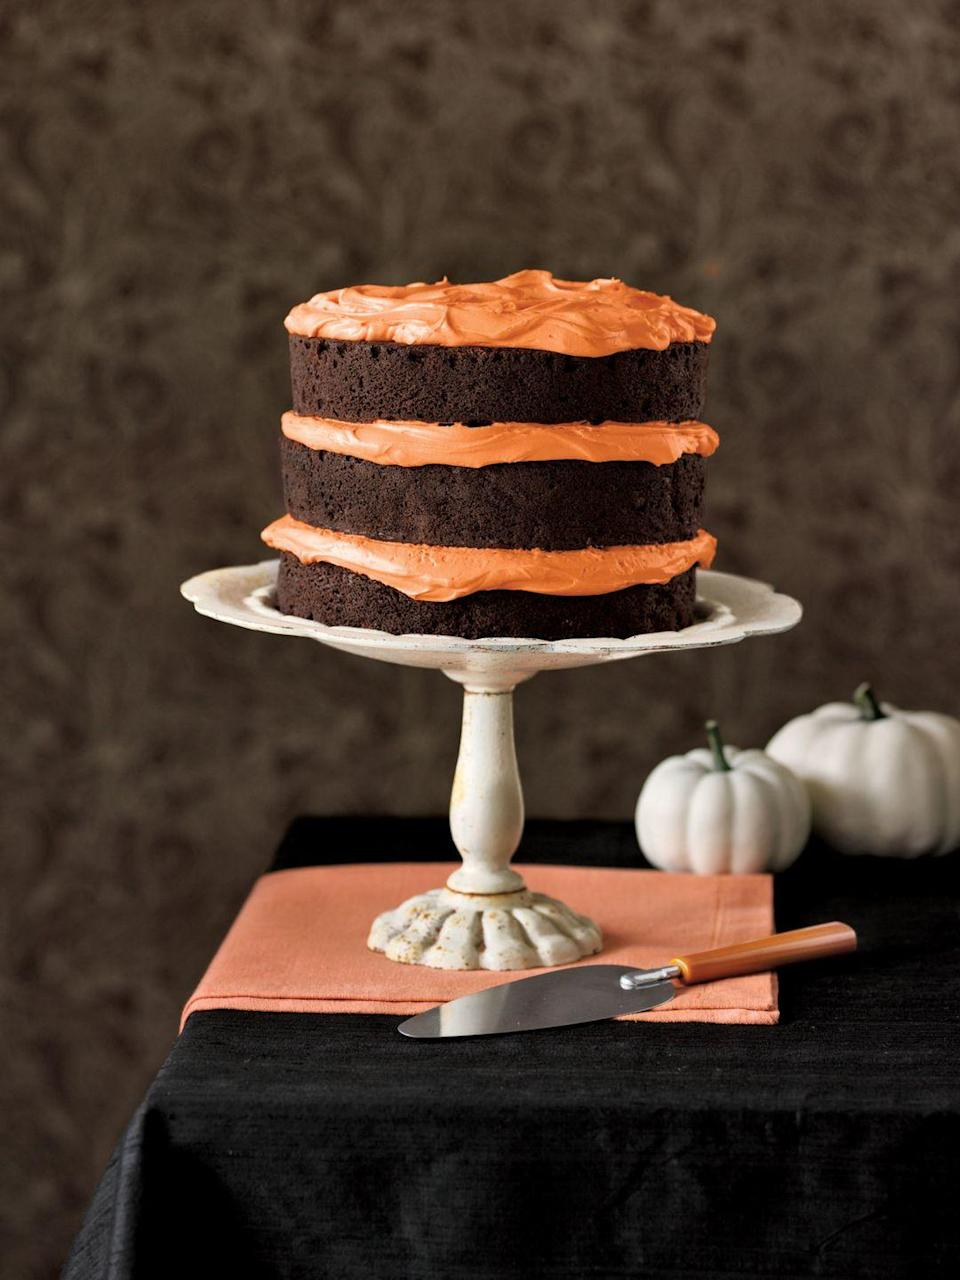 """<p>Give the naked cake trend an orange and black twist for Halloween.</p><p><em><a href=""""https://www.goodhousekeeping.com/food-recipes/a5721/chocolate-pumpkin-cake-cupcakes-3922/"""" rel=""""nofollow noopener"""" target=""""_blank"""" data-ylk=""""slk:Get the recipe for Chocolate Pumpkin Cake »"""" class=""""link rapid-noclick-resp"""">Get the recipe for Chocolate Pumpkin Cake »</a></em> </p>"""